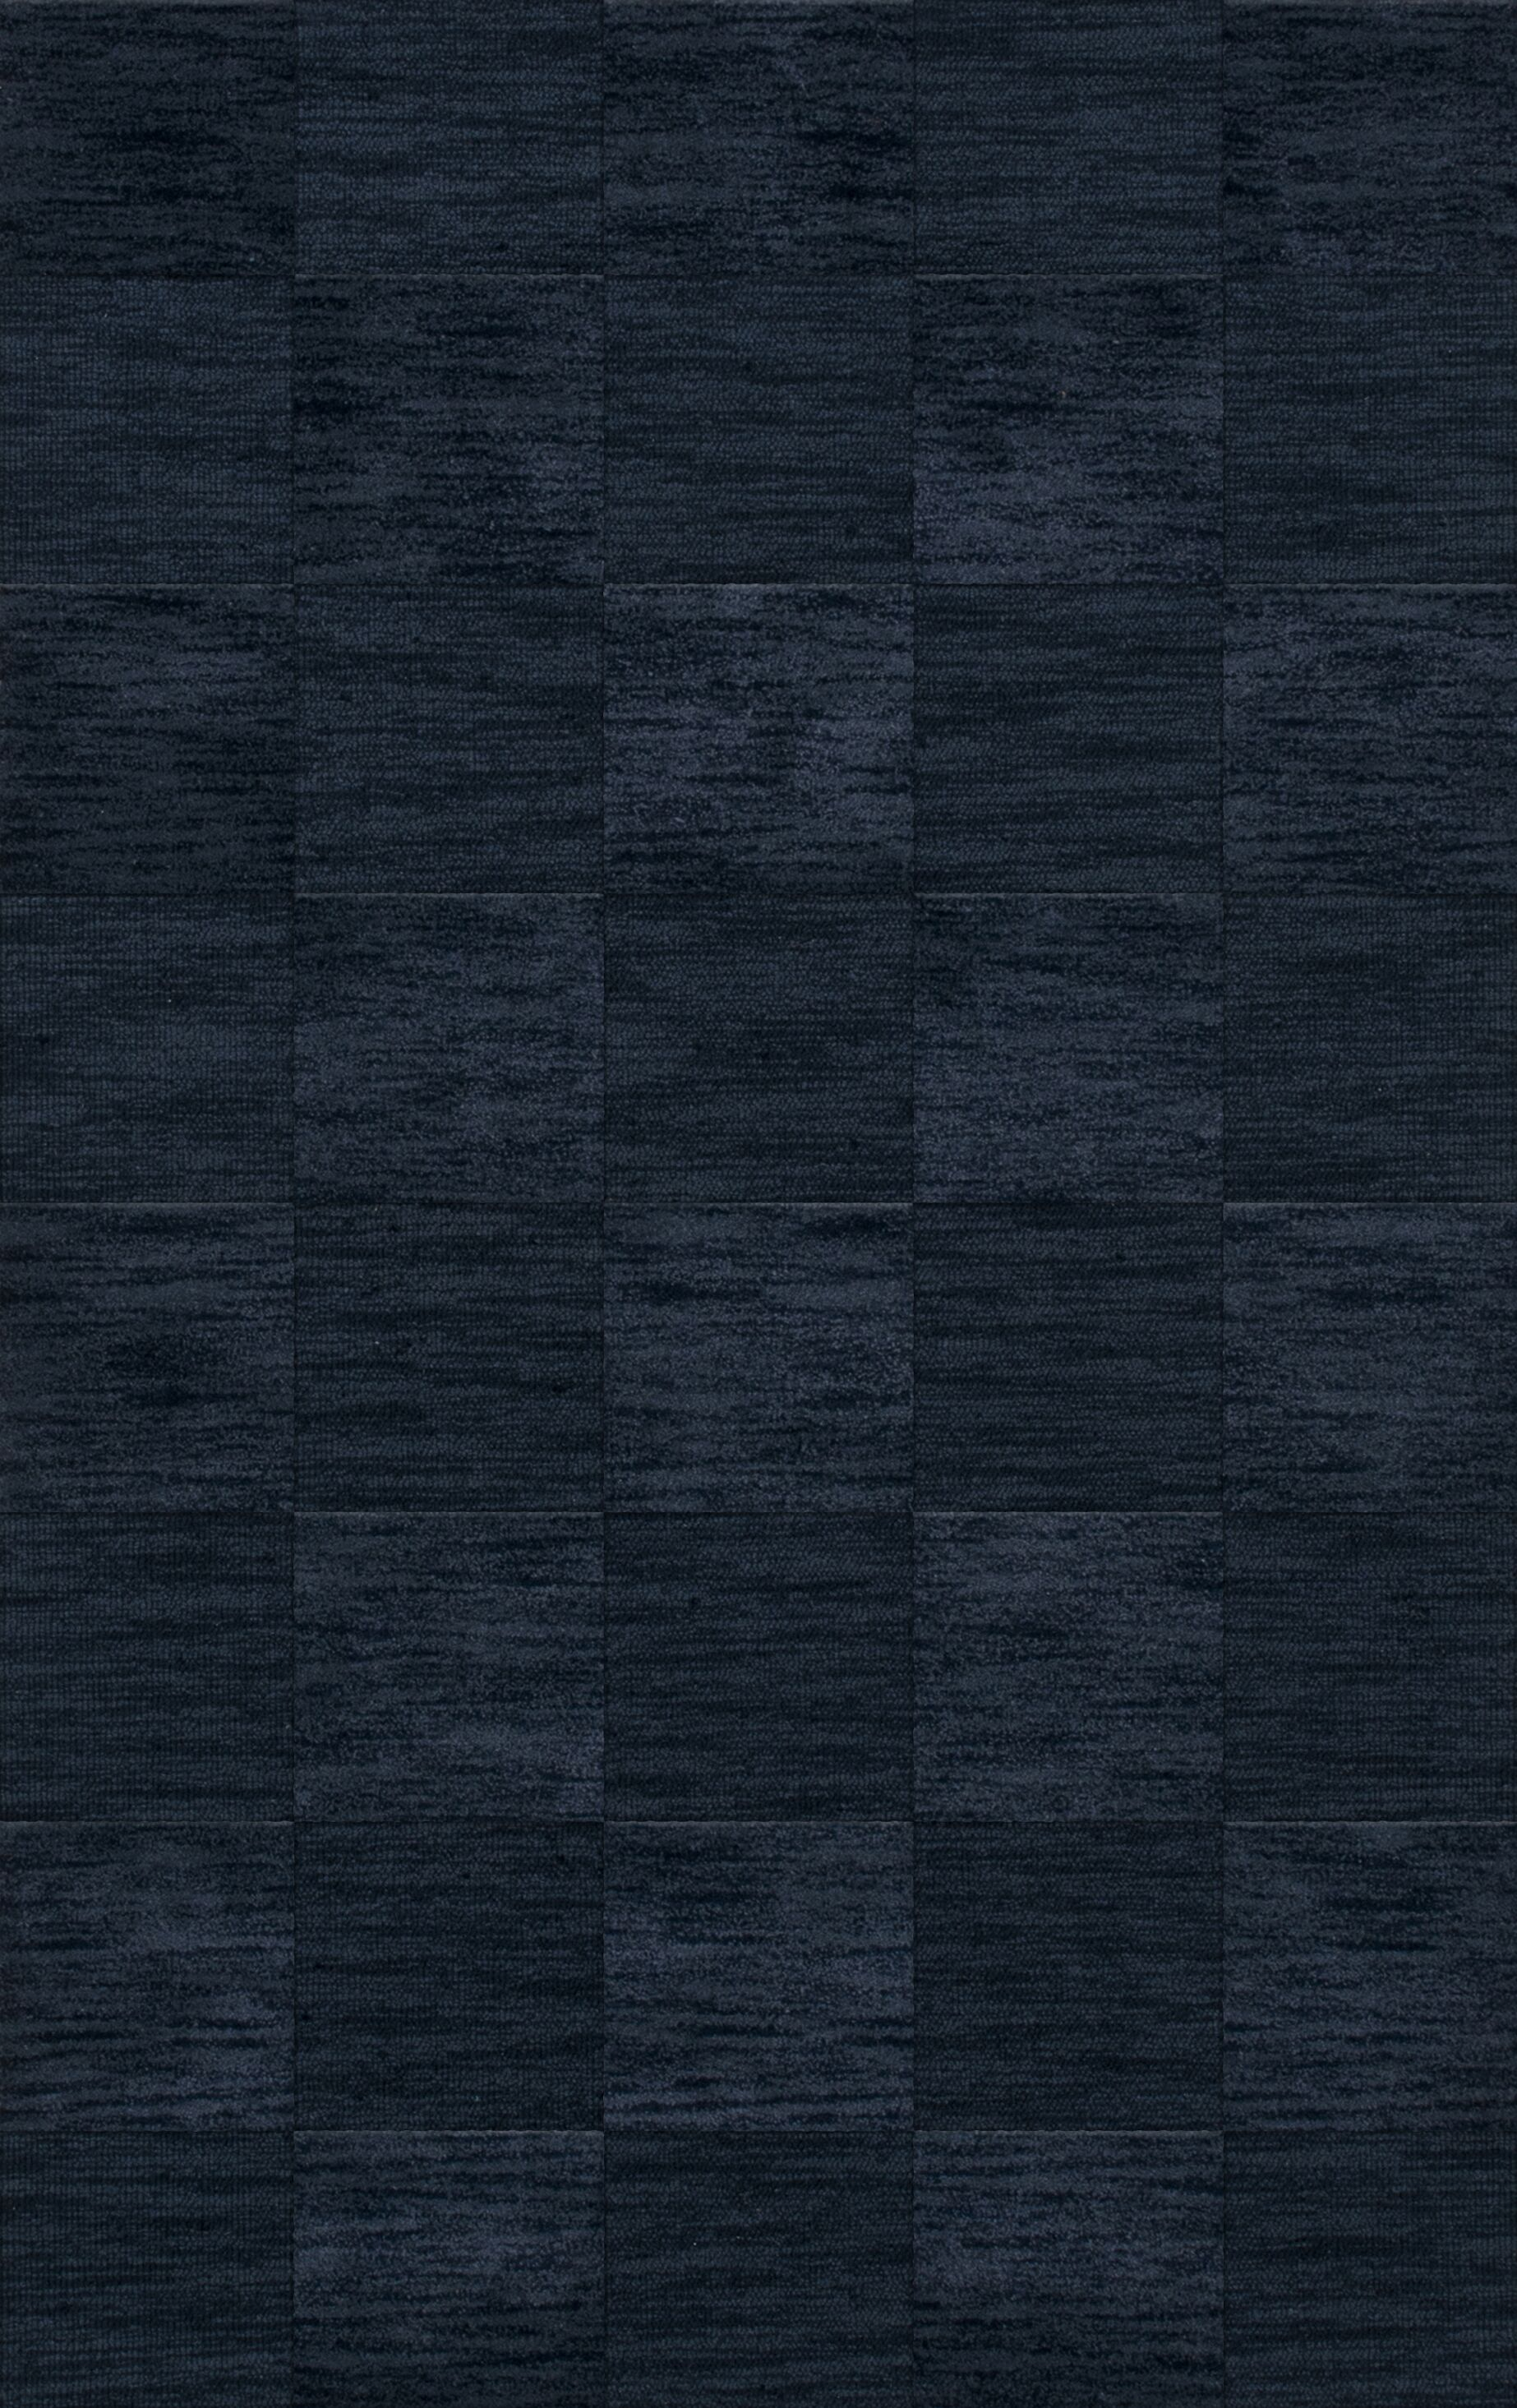 Dover Tufted Wool Navy Area Rug Rug Size: Rectangle 12' x 15'